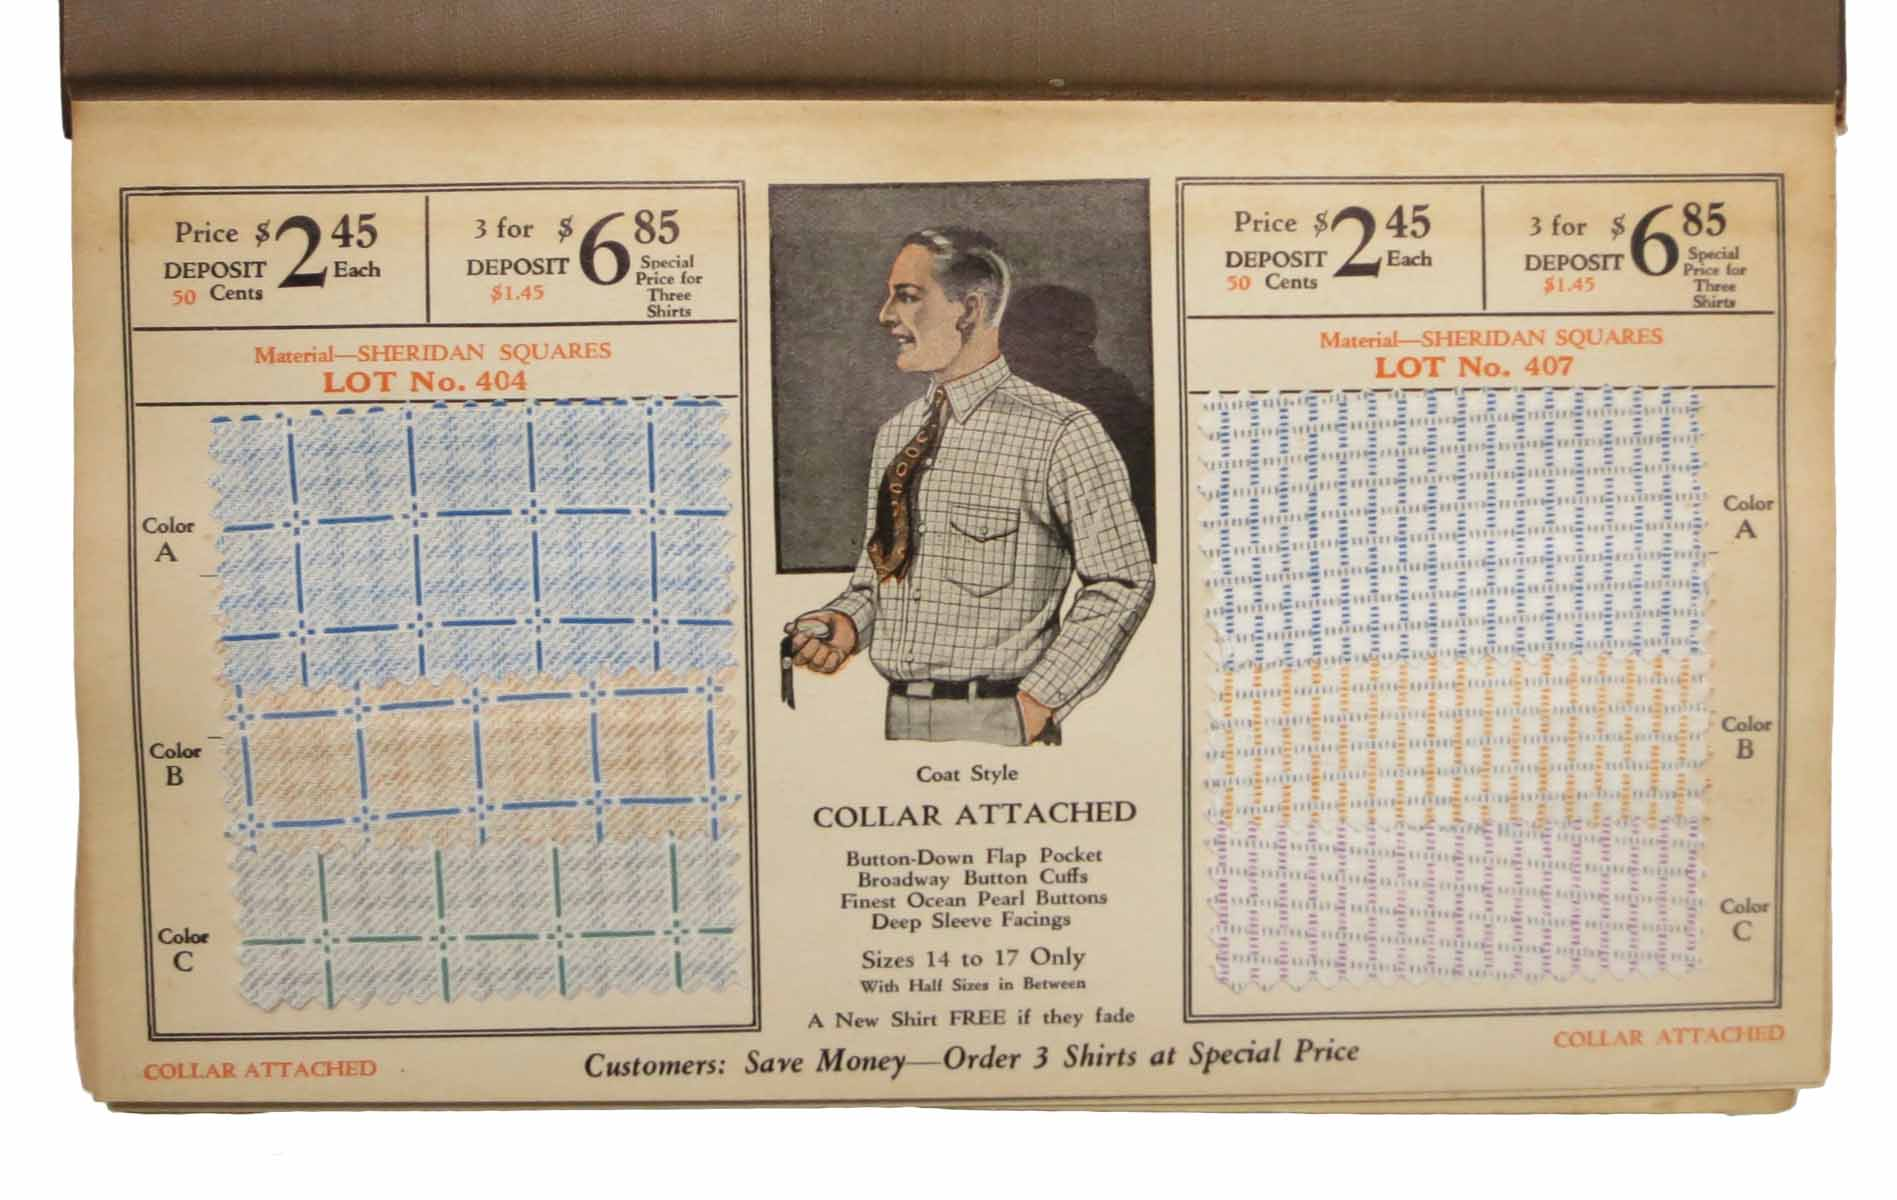 here s a real shirt chicago patent shirt co cloth sample catalogue